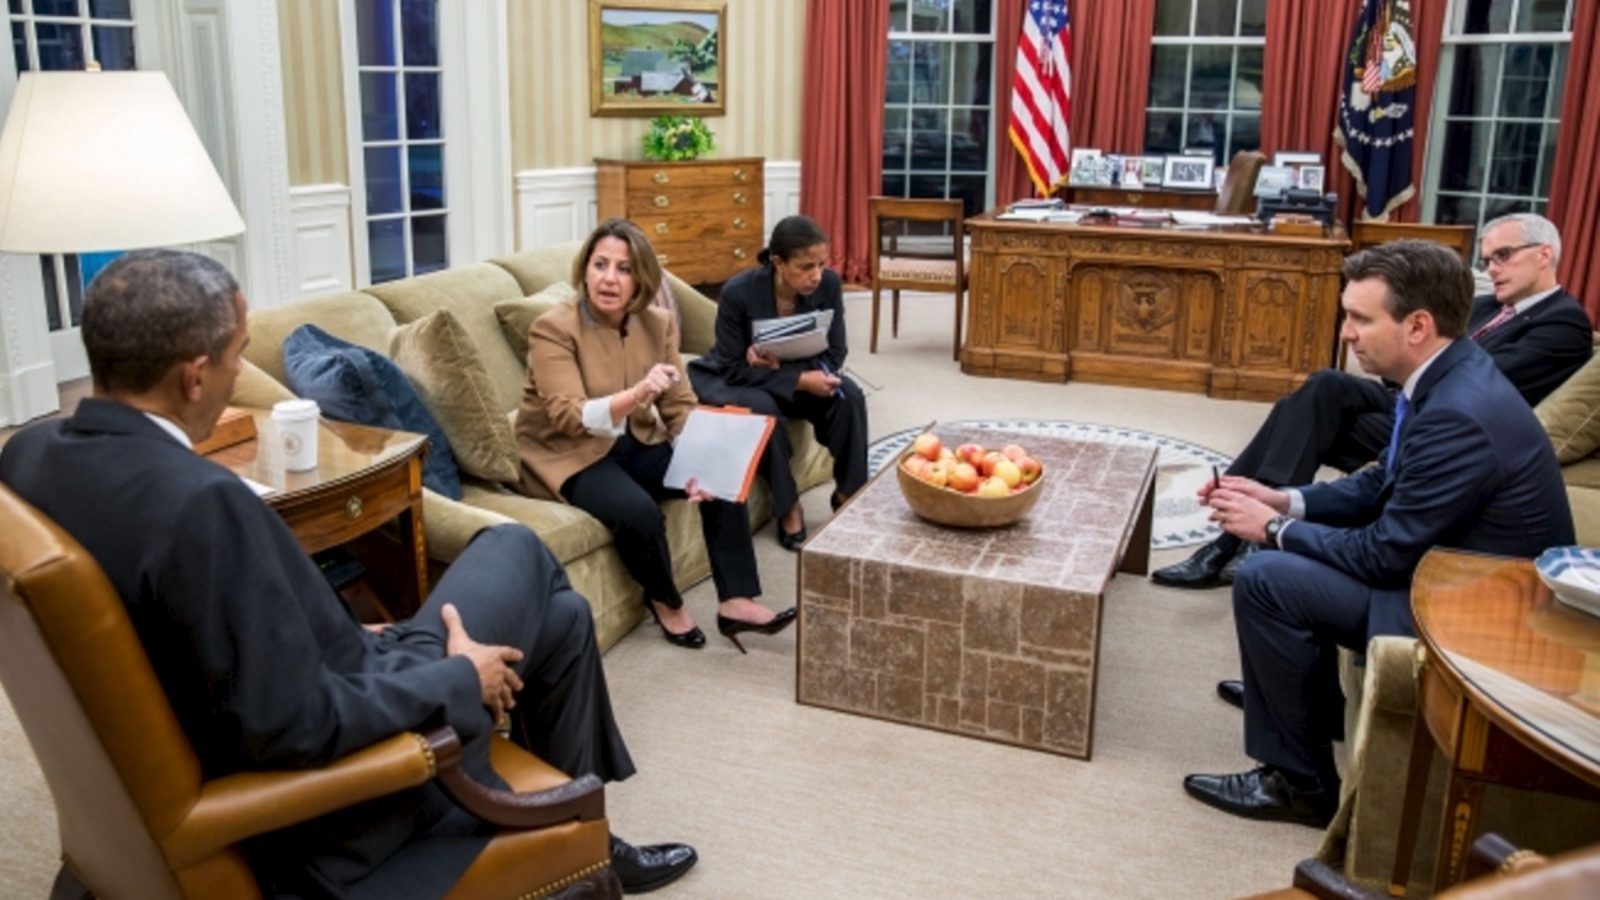 U.S. President Barack Obama is briefed on the Paris attacks by Lisa Monaco (2nd L), Assistant to the President for Homeland Security and Counter-terrorism, in the White House Oval Office in Washington, DC November 13, 2015. Obama pledged his government's support to France on Friday after a series of attacks in Paris, but said he did not yet know the details of what had happened and that the situation was still unfolding. Also attending the briefing were National Security Advisor Susan E. Rice (C), Chief of Staff Denis McDonough and Press Secretary Josh Earnest. REUTERS/White House/Pete Souza/Handout via ReutersATTENTION EDITORS - THIS PICTURE WAS PROVIDED BY A THIRD PARTY. REUTERS IS UNABLE TO INDEPENDENTLY VERIFY THE AUTHENTICITY, CONTENT, LOCATION OR DATE OF THIS IMAGE. IT IS DISTRIBUTED EXACTLY AS RECEIVED BY REUTERS, AS A SERVICE TO CLIENTS. EDITORIAL USE ONLY. NOT FOR SALE FOR MARKETING OR ADVERTISING CAMPAIGNS. - RTS6XST